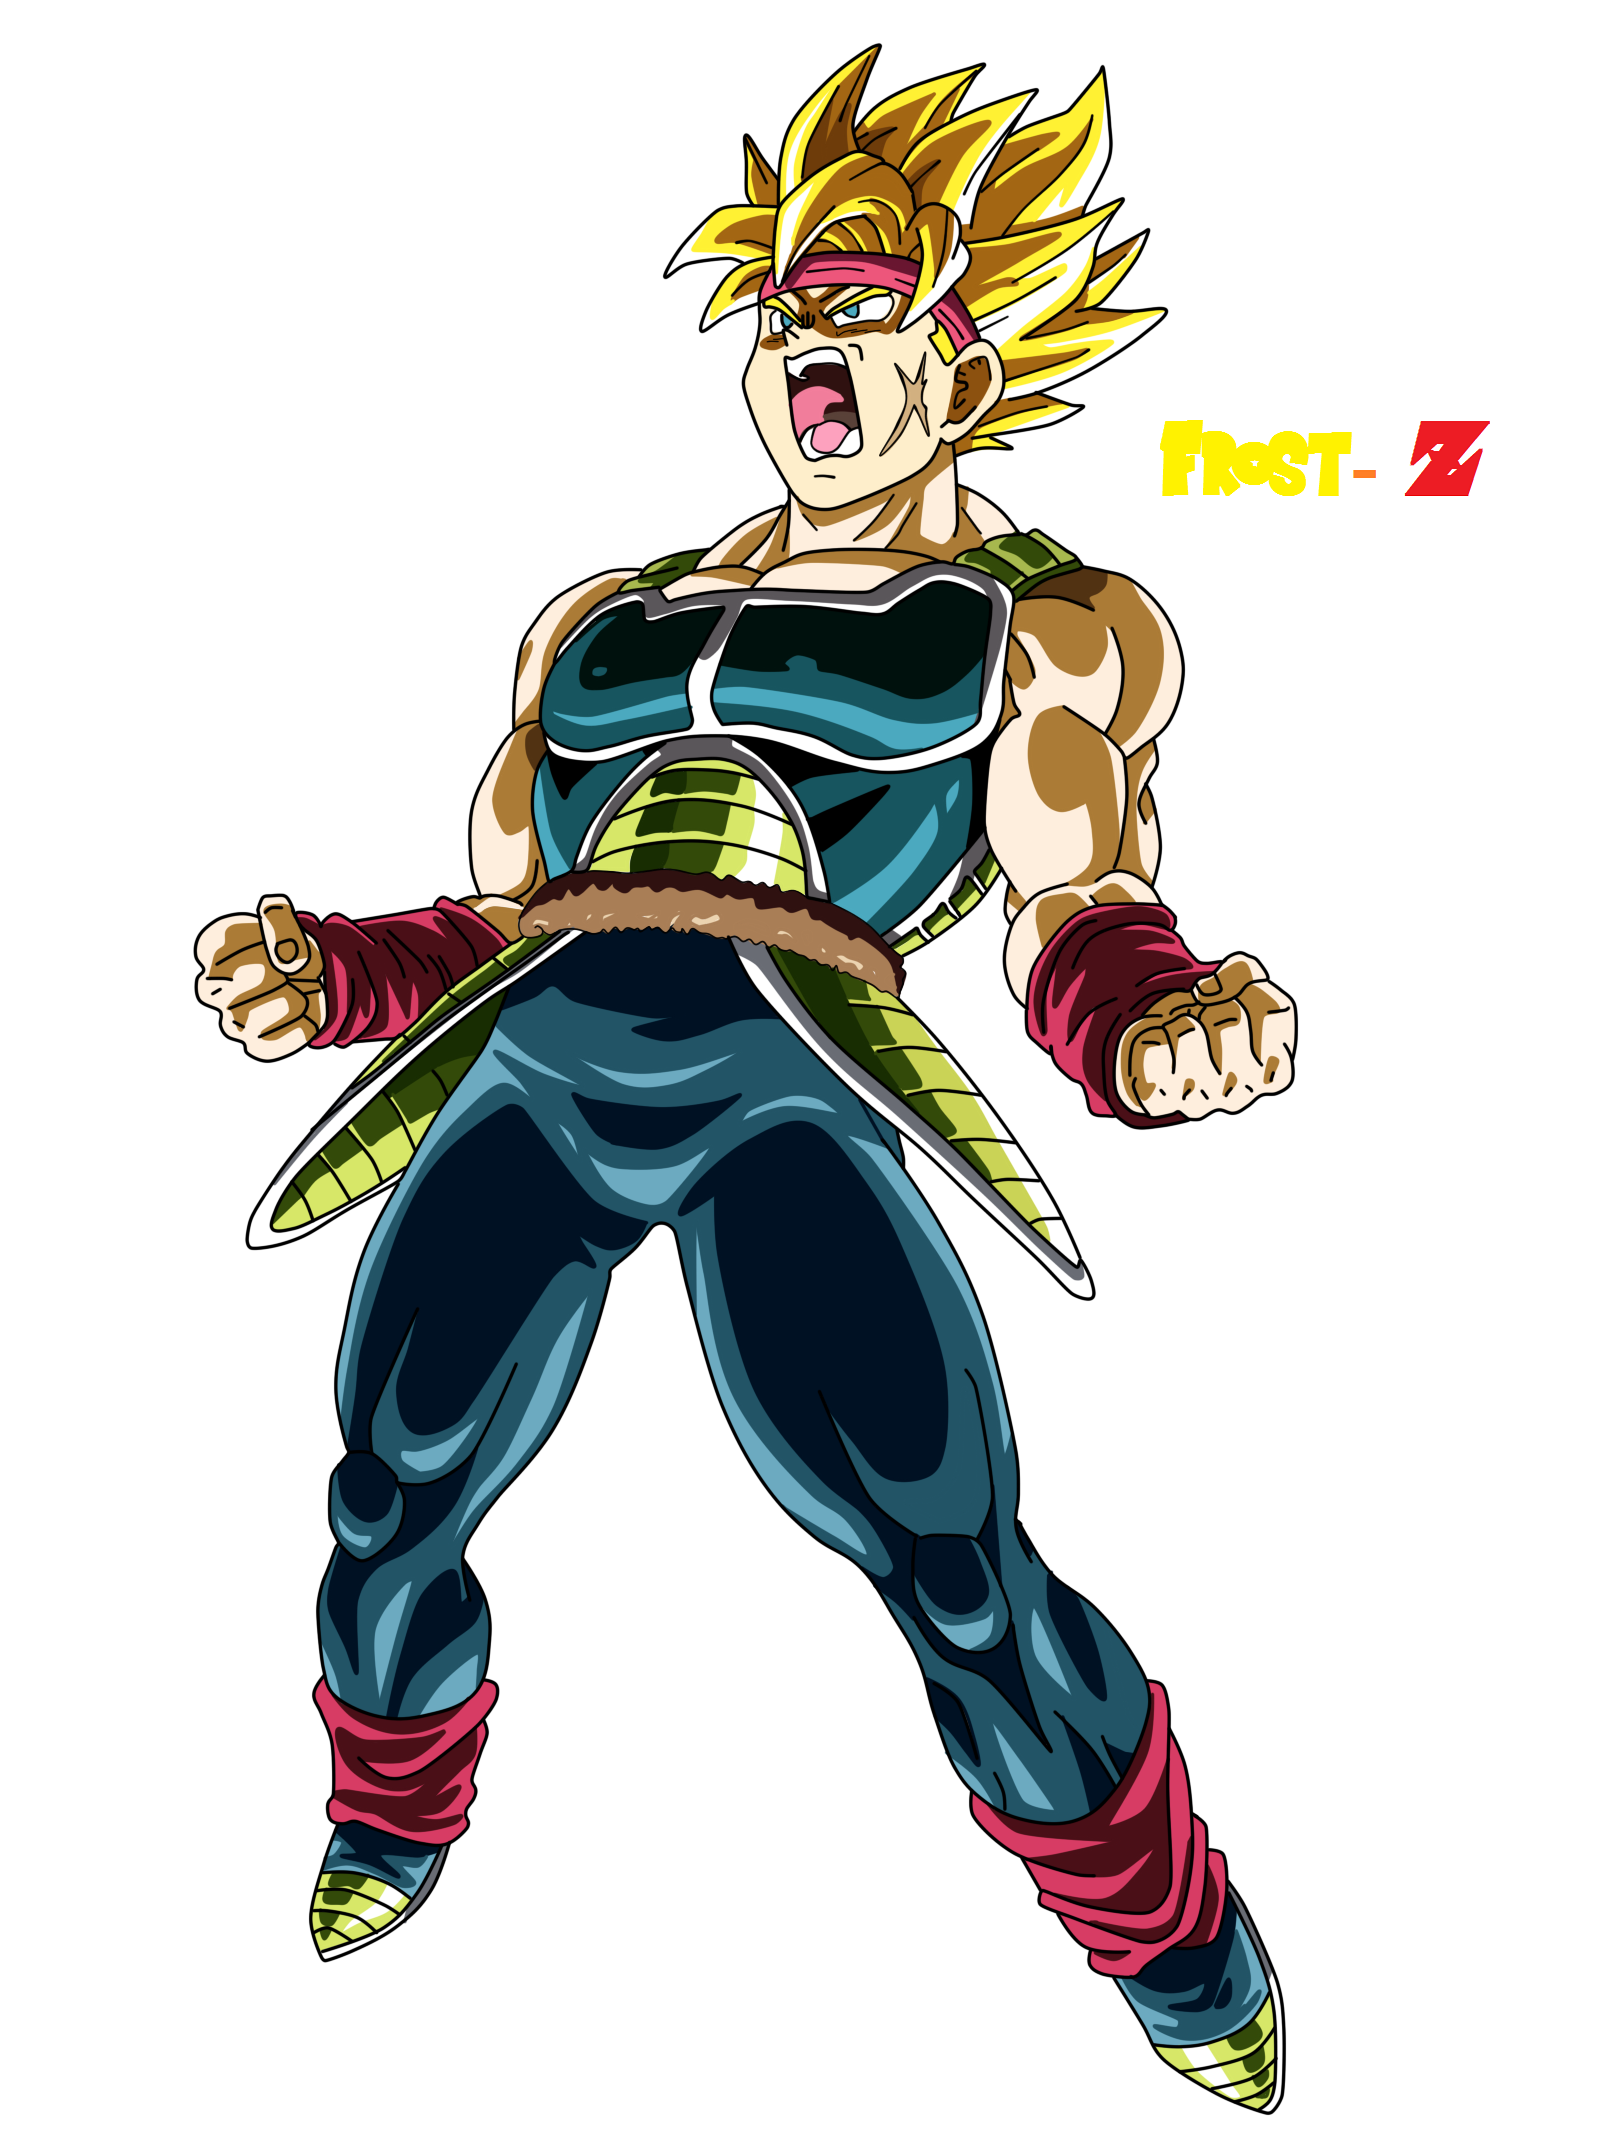 Bardock Super Saiyan by Frost-Z on DeviantArt